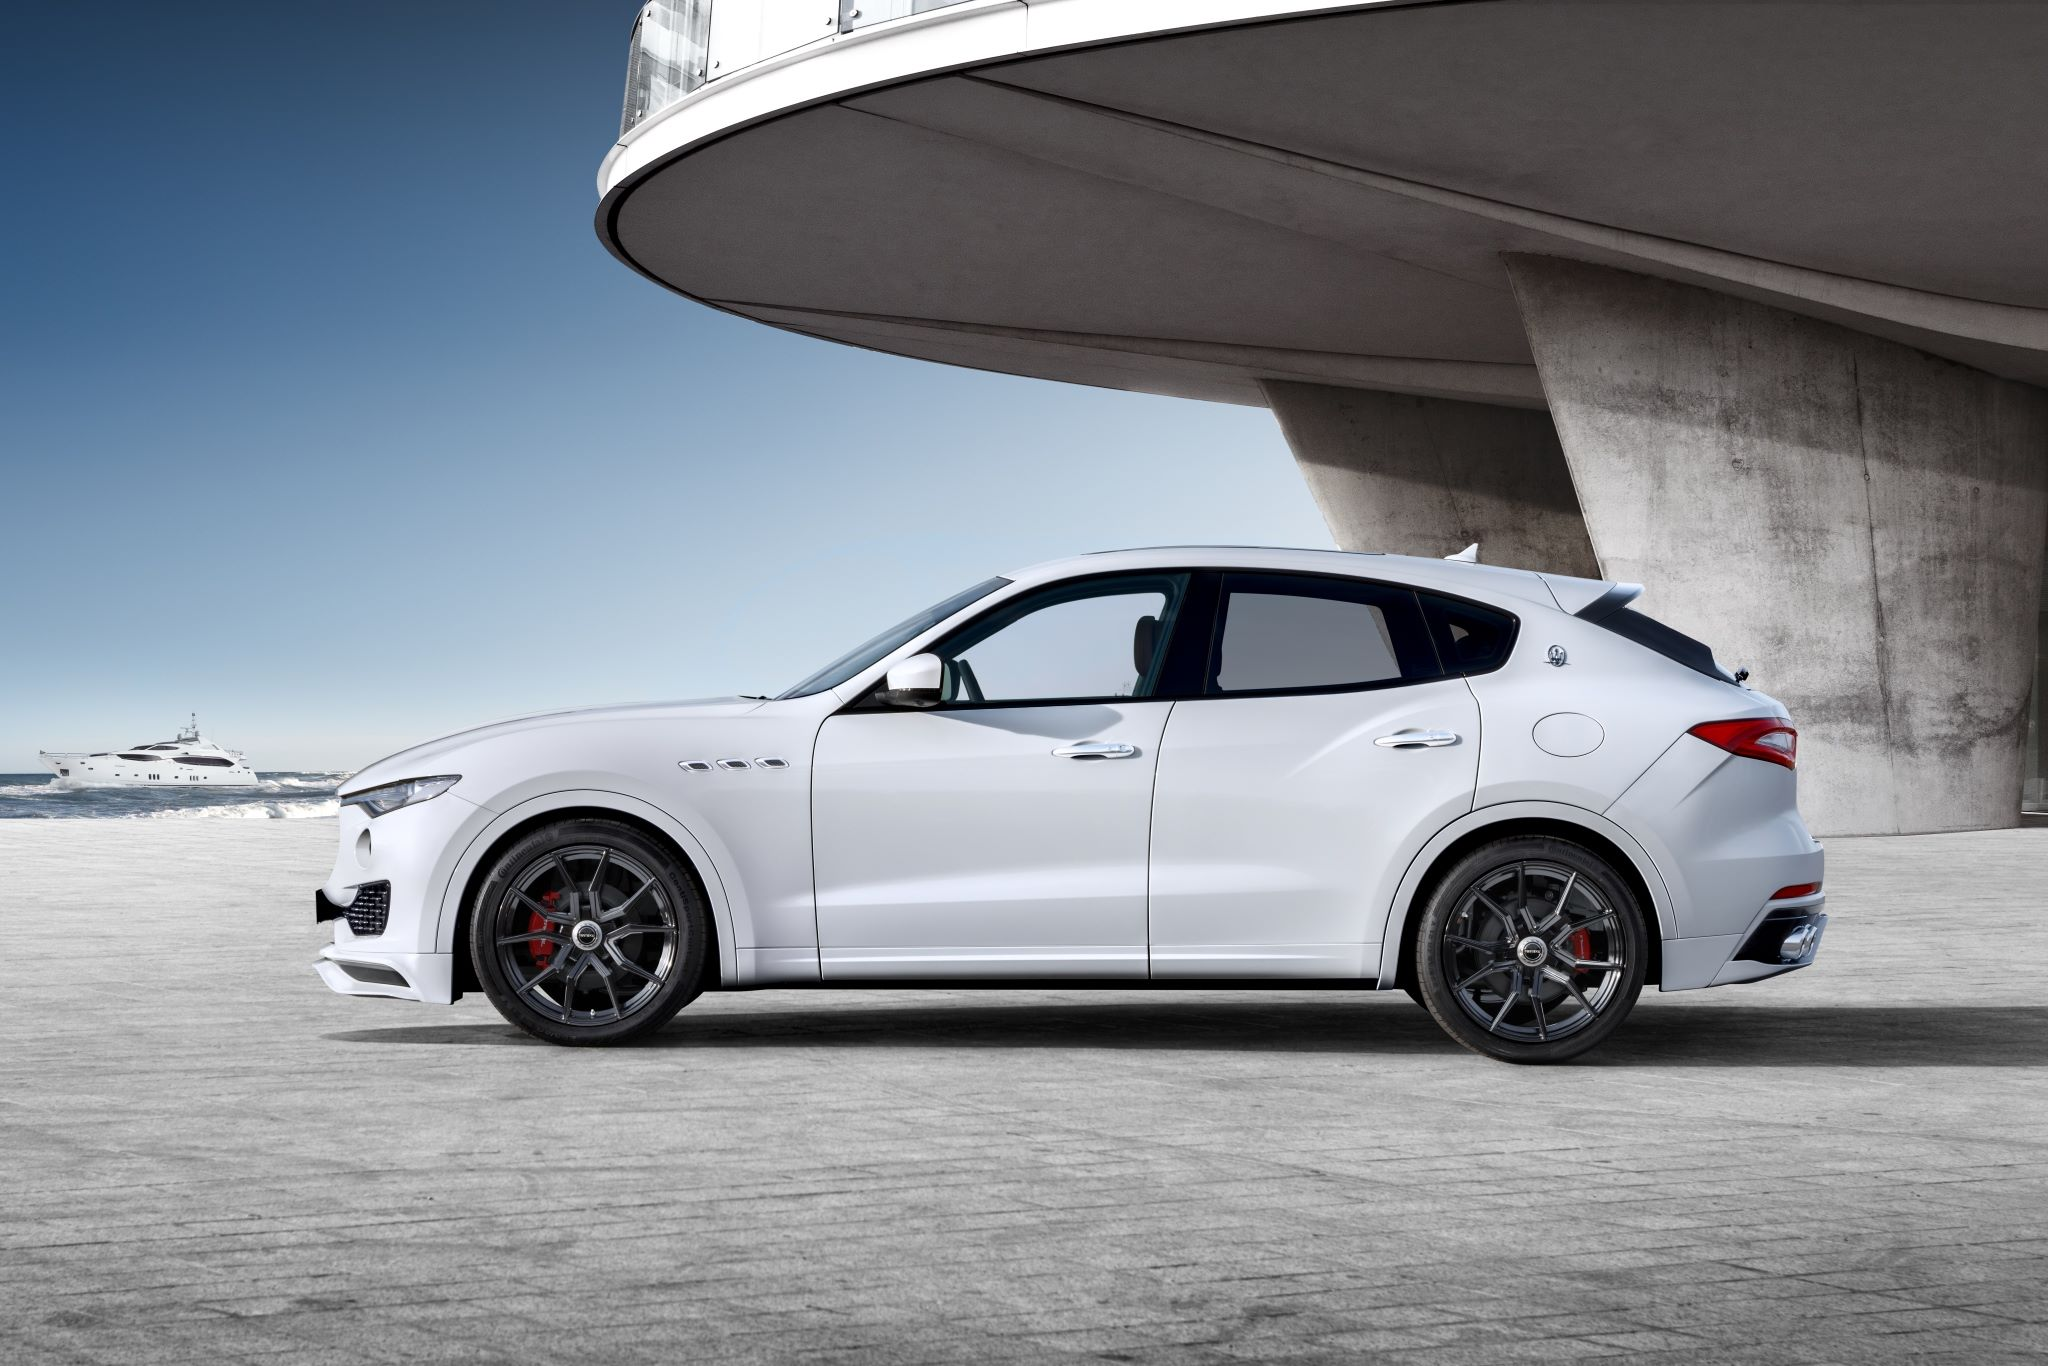 Maserati Levante Gets A Tuning Kit From Startech It Looks